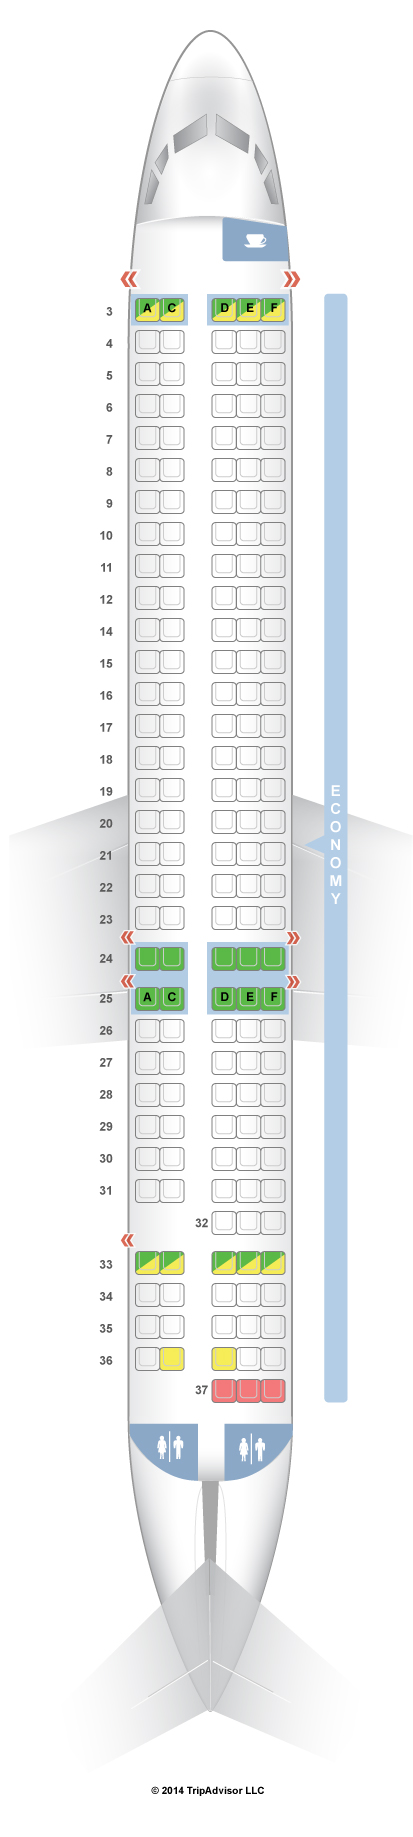 frontier airline planes seat chart